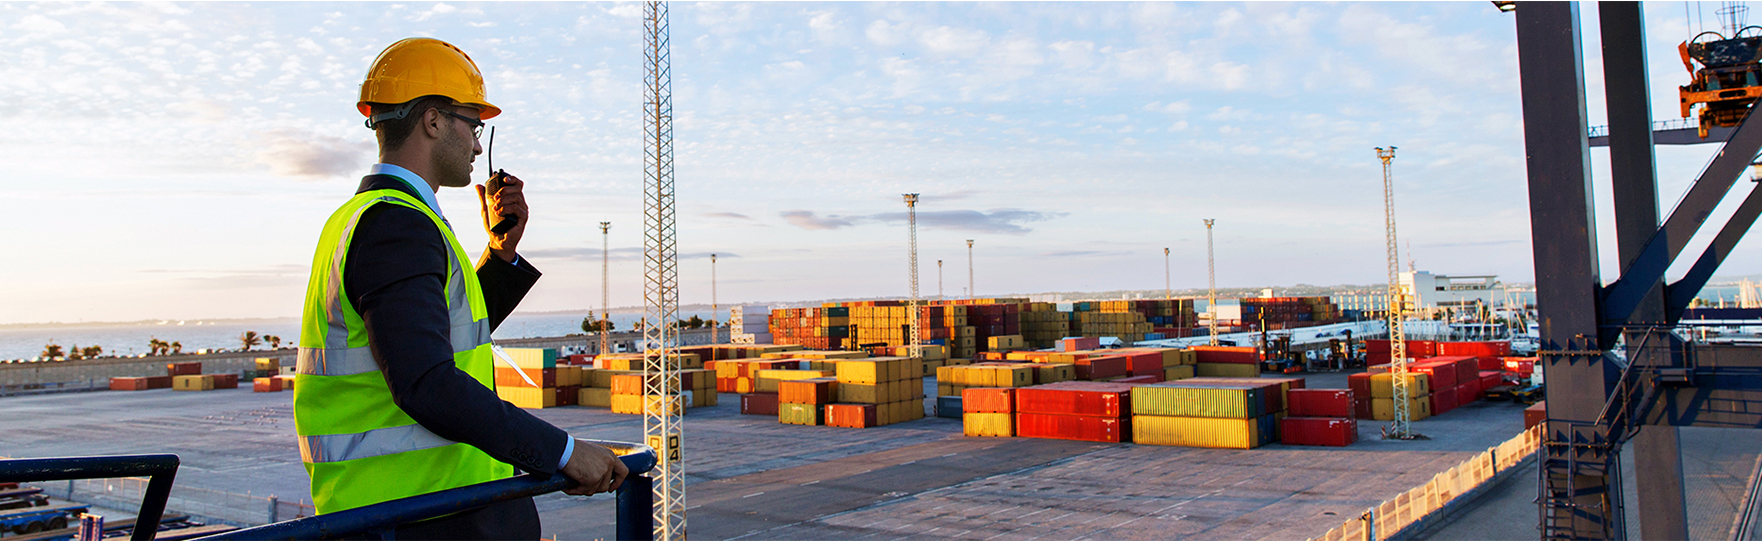 Man in high vis jacket with walkie talkie looking down on containers photograph